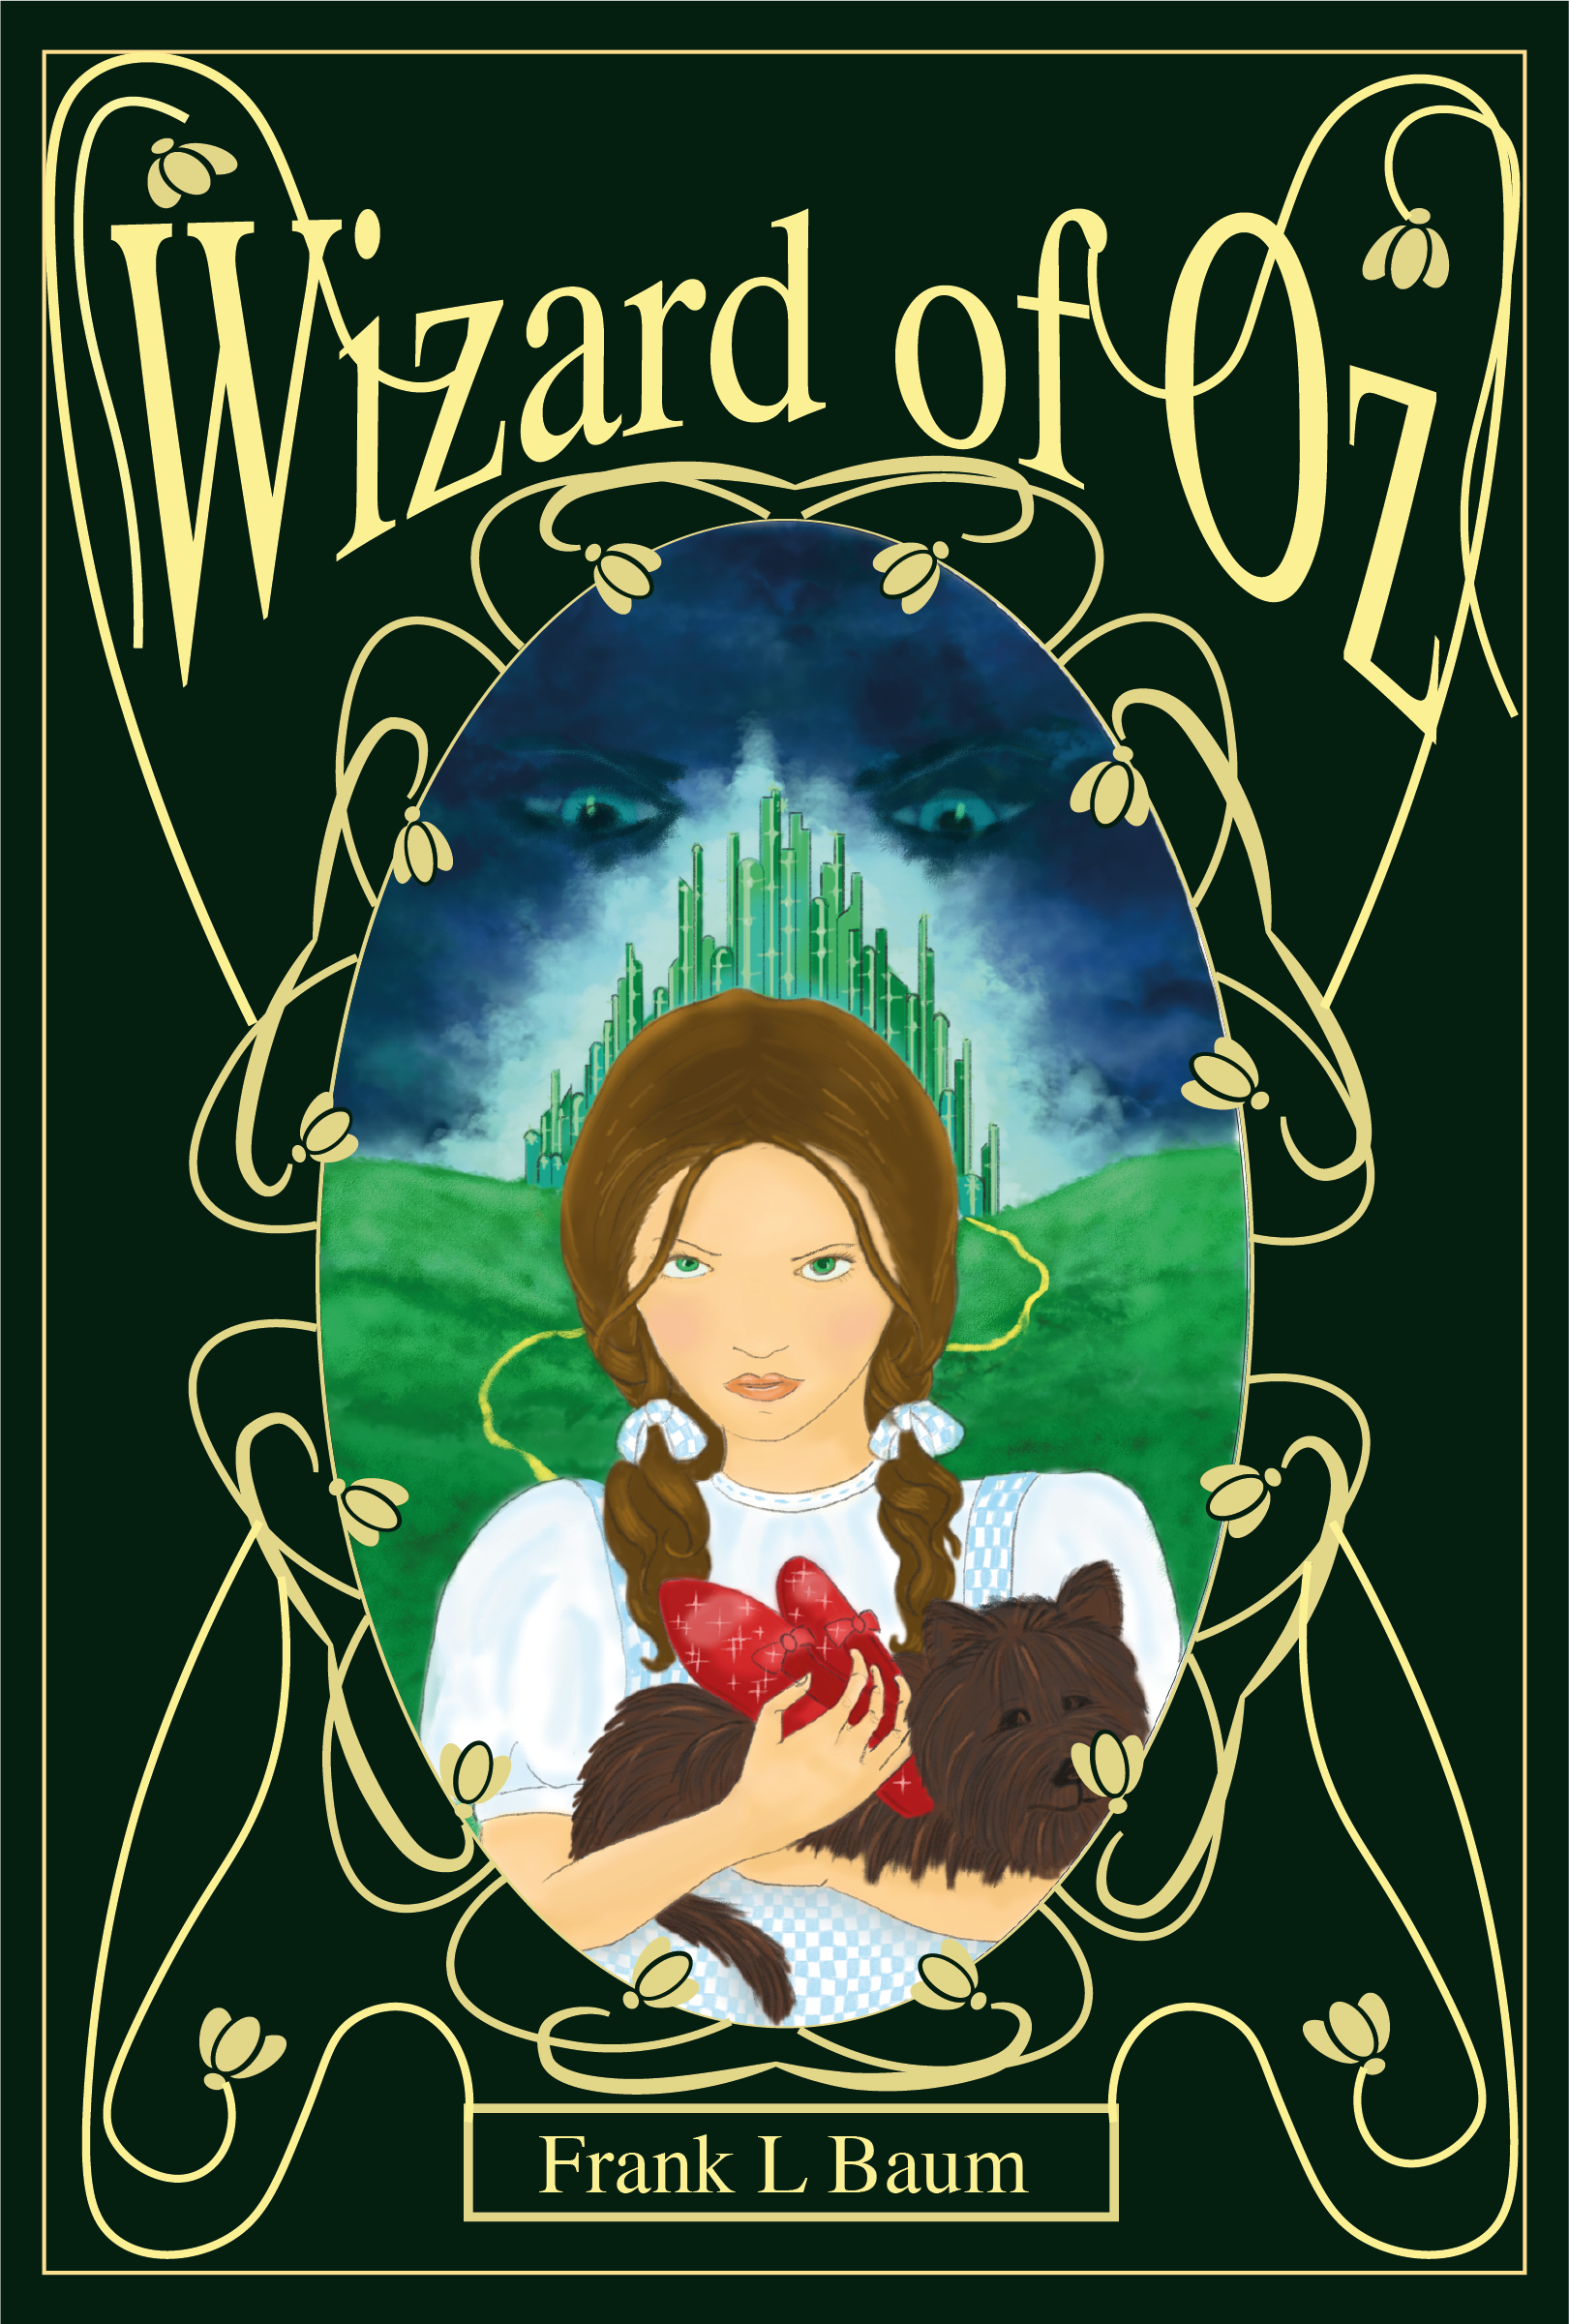 wizard of oz book cover fin.png